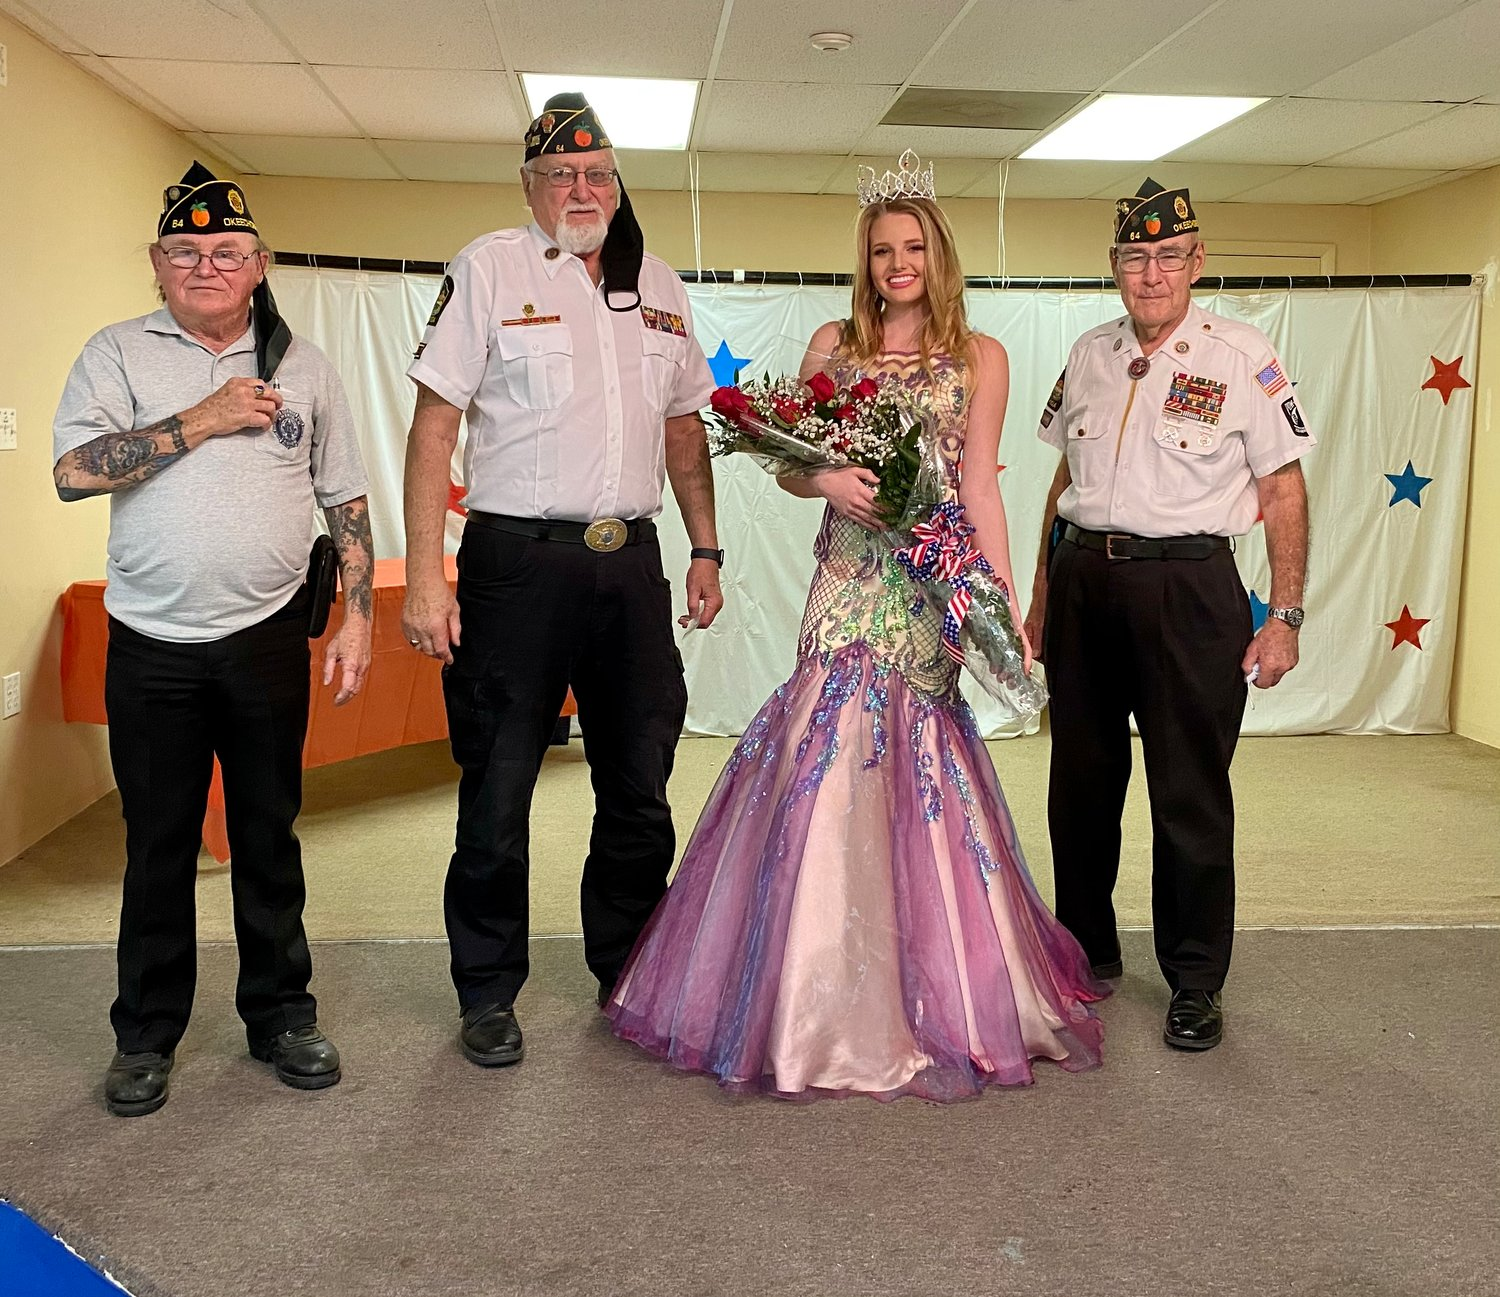 Miss American Legion 2021 Lilly Maxwell with American Legion members.